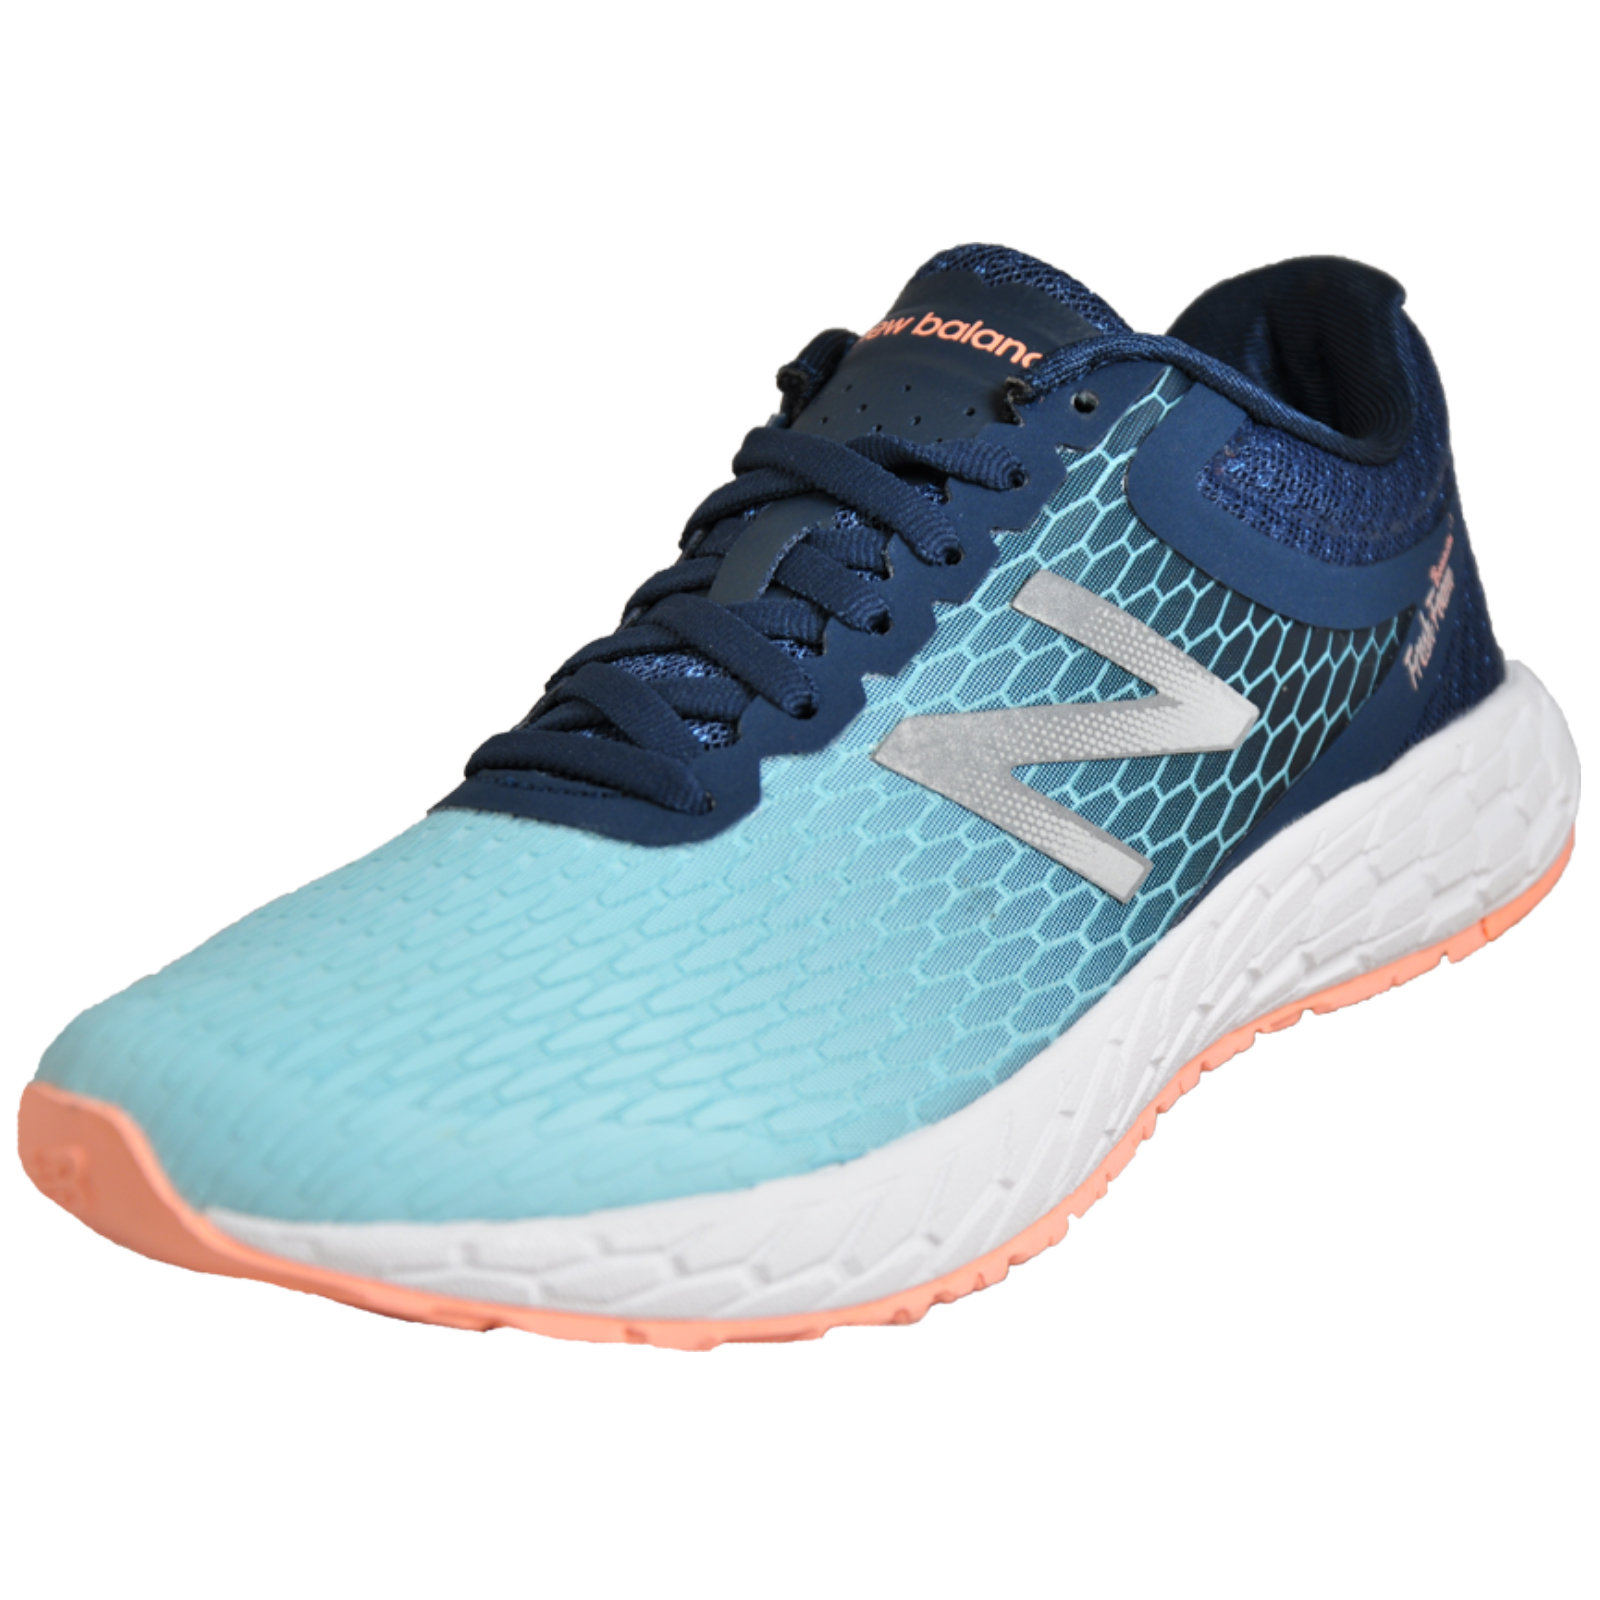 1af7866019ff7 Details about New Balance Fresh Foam Boracay v3 Women's Elite Running Shoes  Fitness Trainers